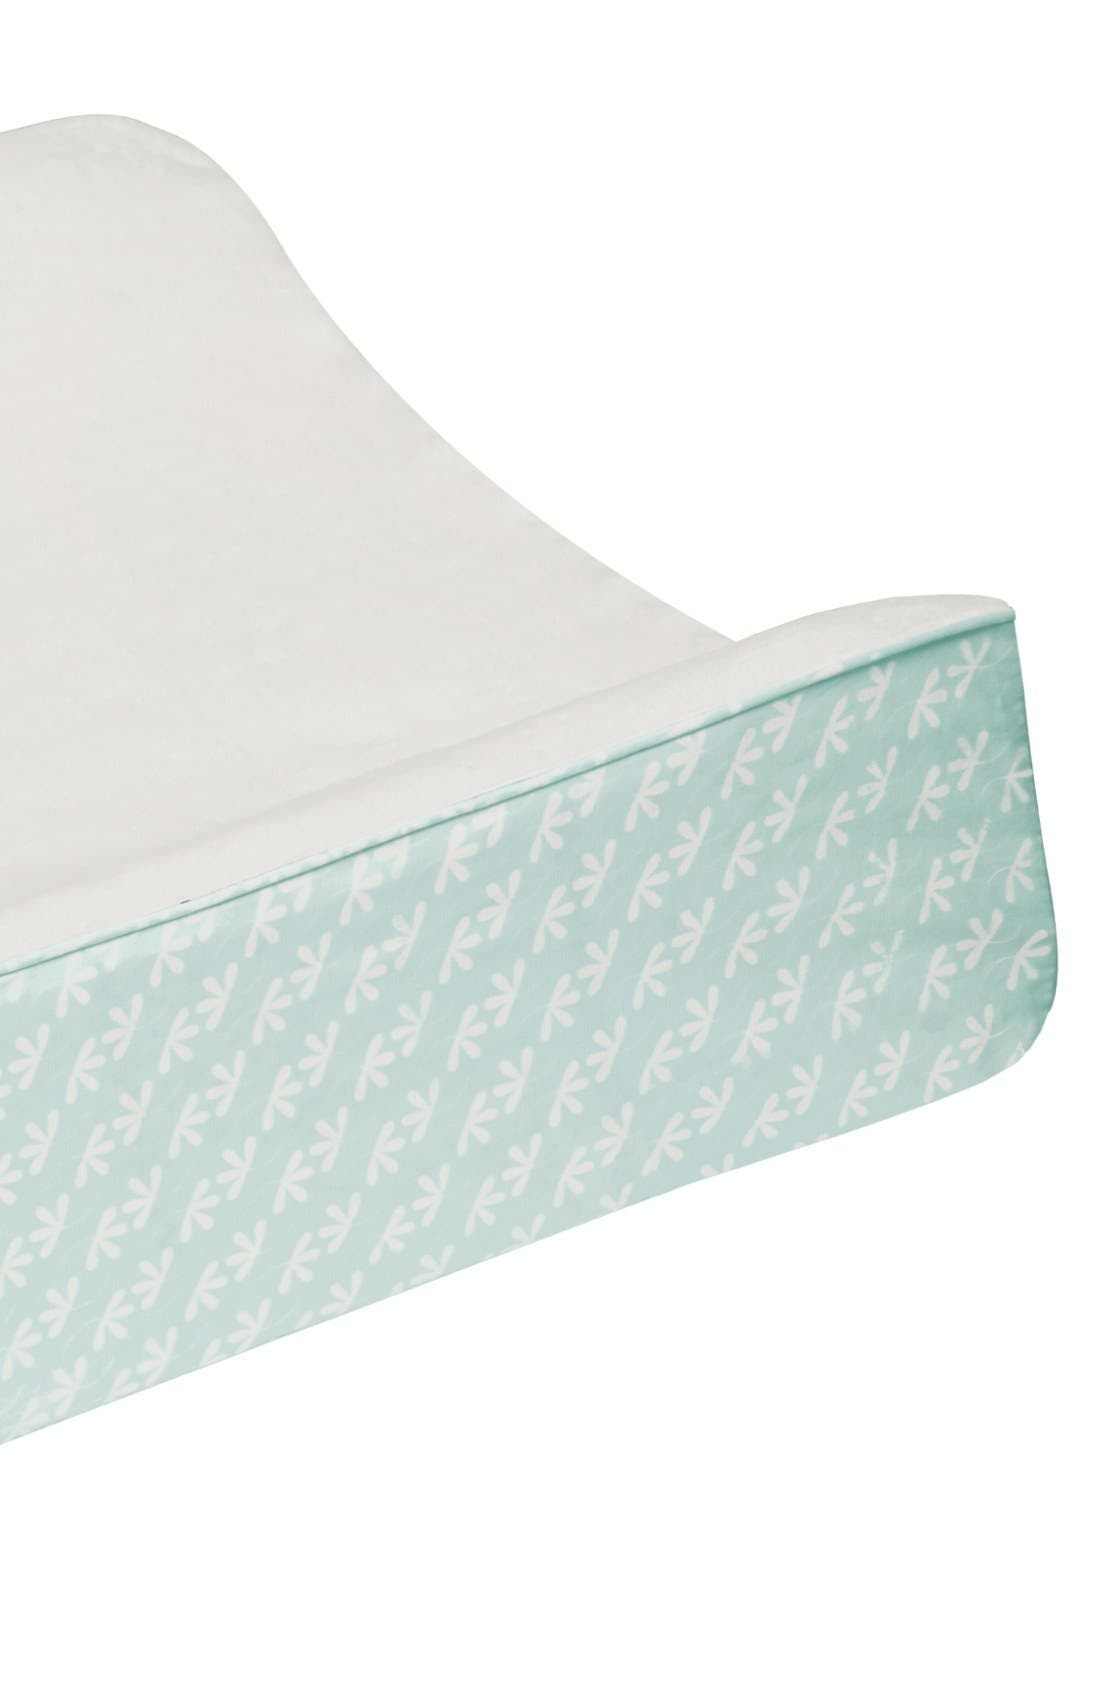 'Flora' Mini Crib Sheet, Changing Pad Cover, Stroller Blanket & Wall Decals,                             Alternate thumbnail 4, color,                             400